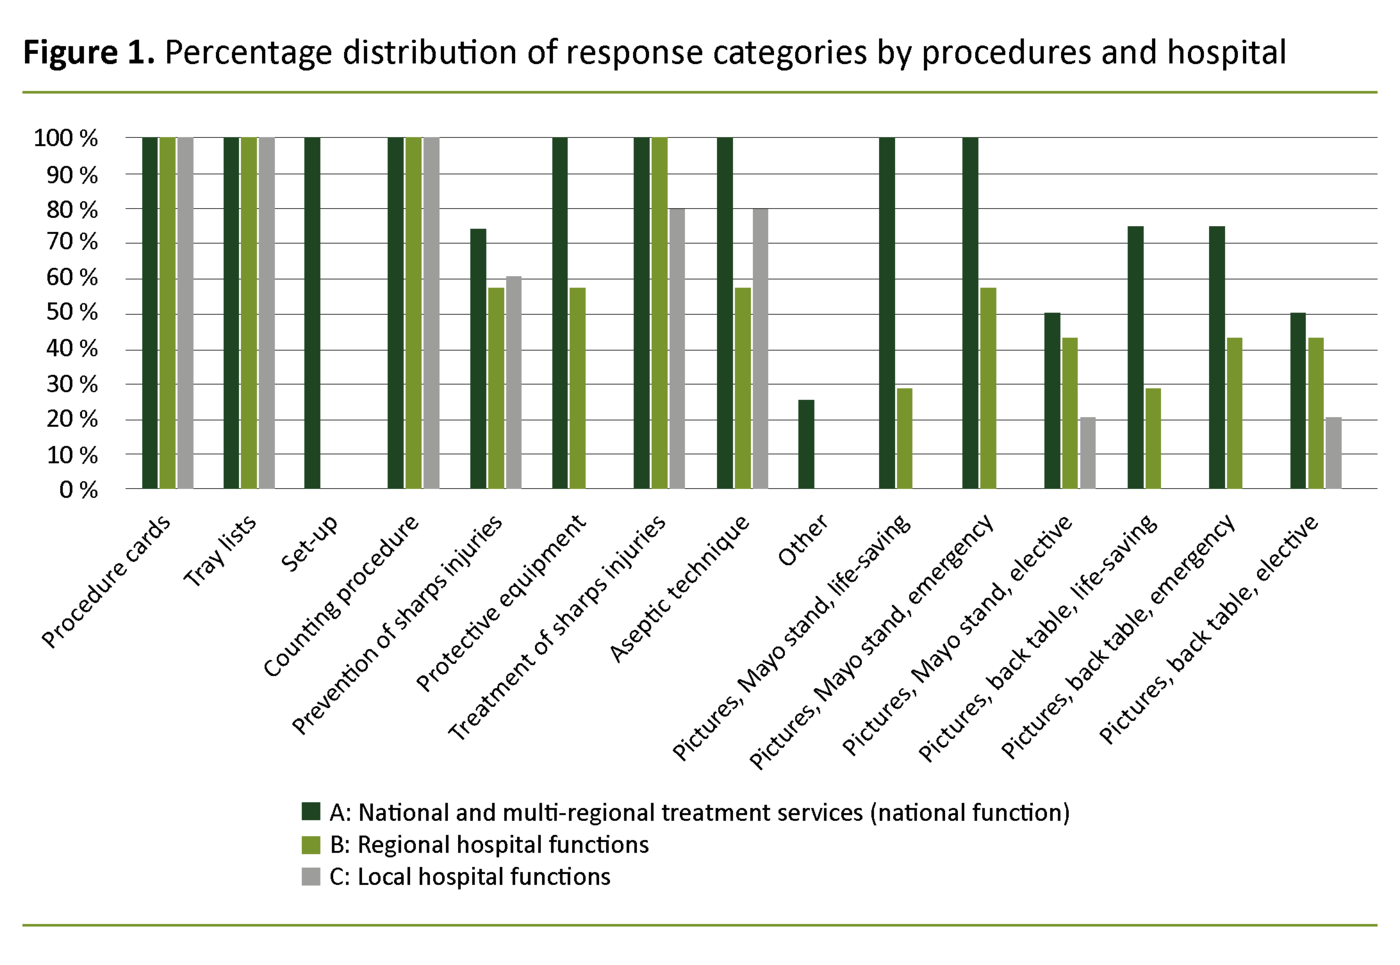 Figure 1. Percentage distribution of response categories by procedures and hospital functions